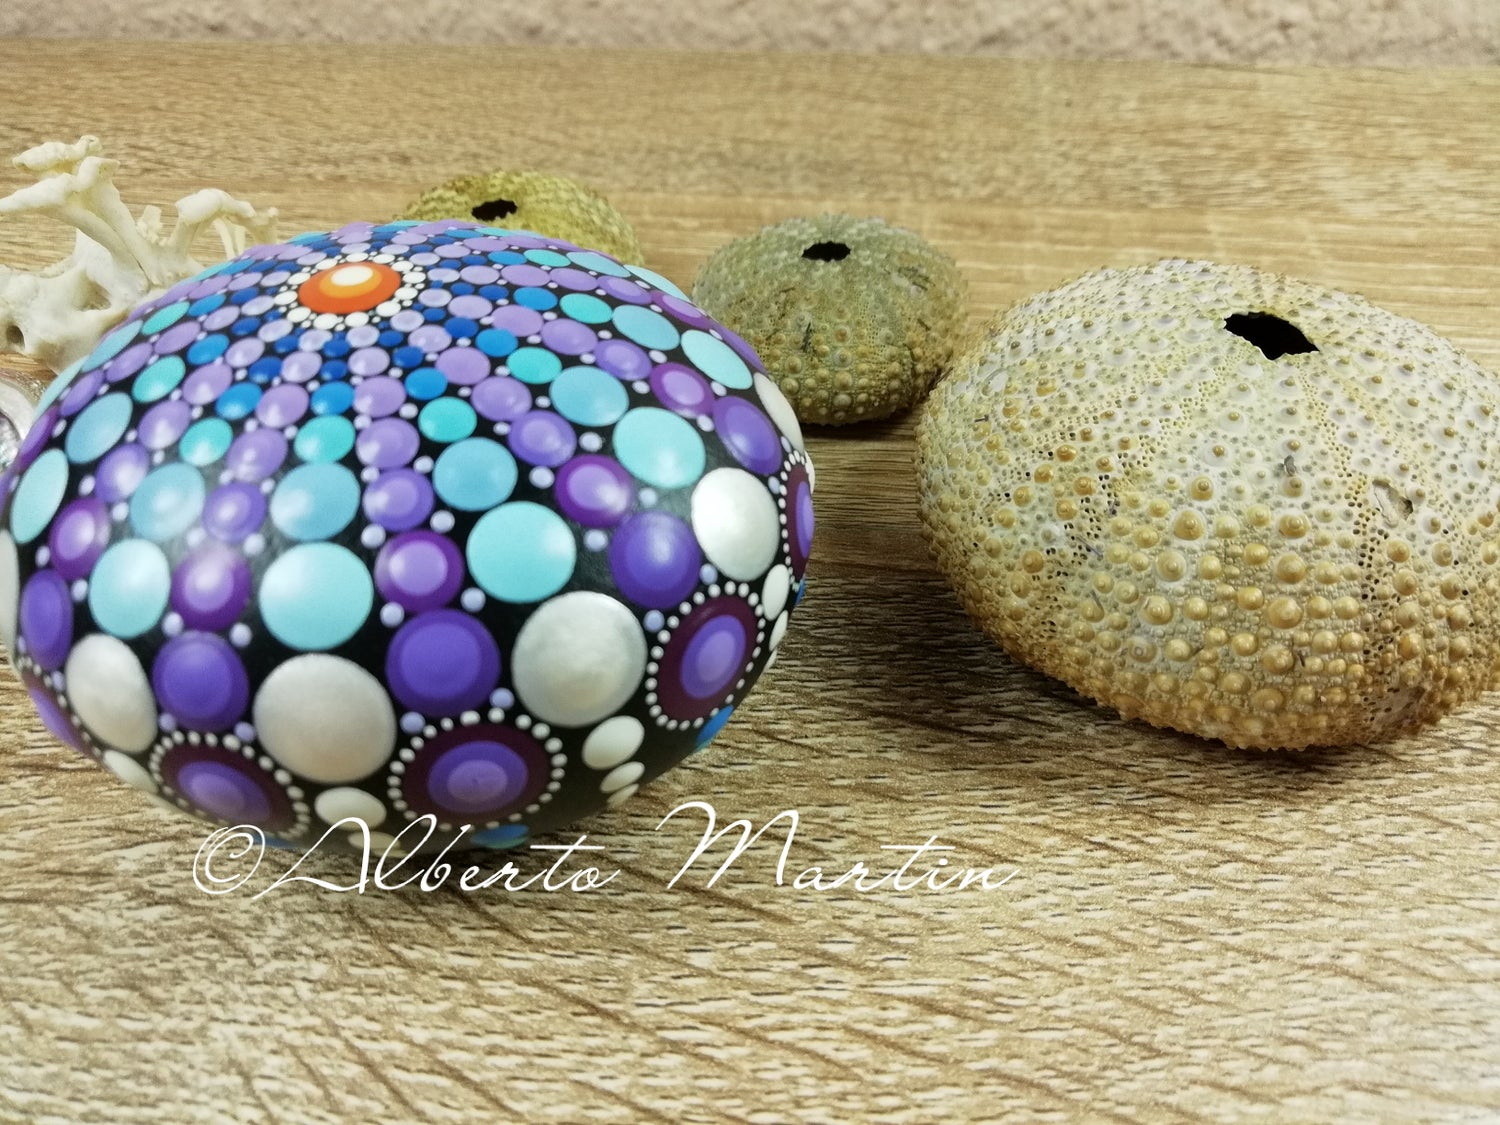 Image of Erizo de Mar- Sea Urchin Stone 2- Dot painted stone- Purple, blue- Mandalaole